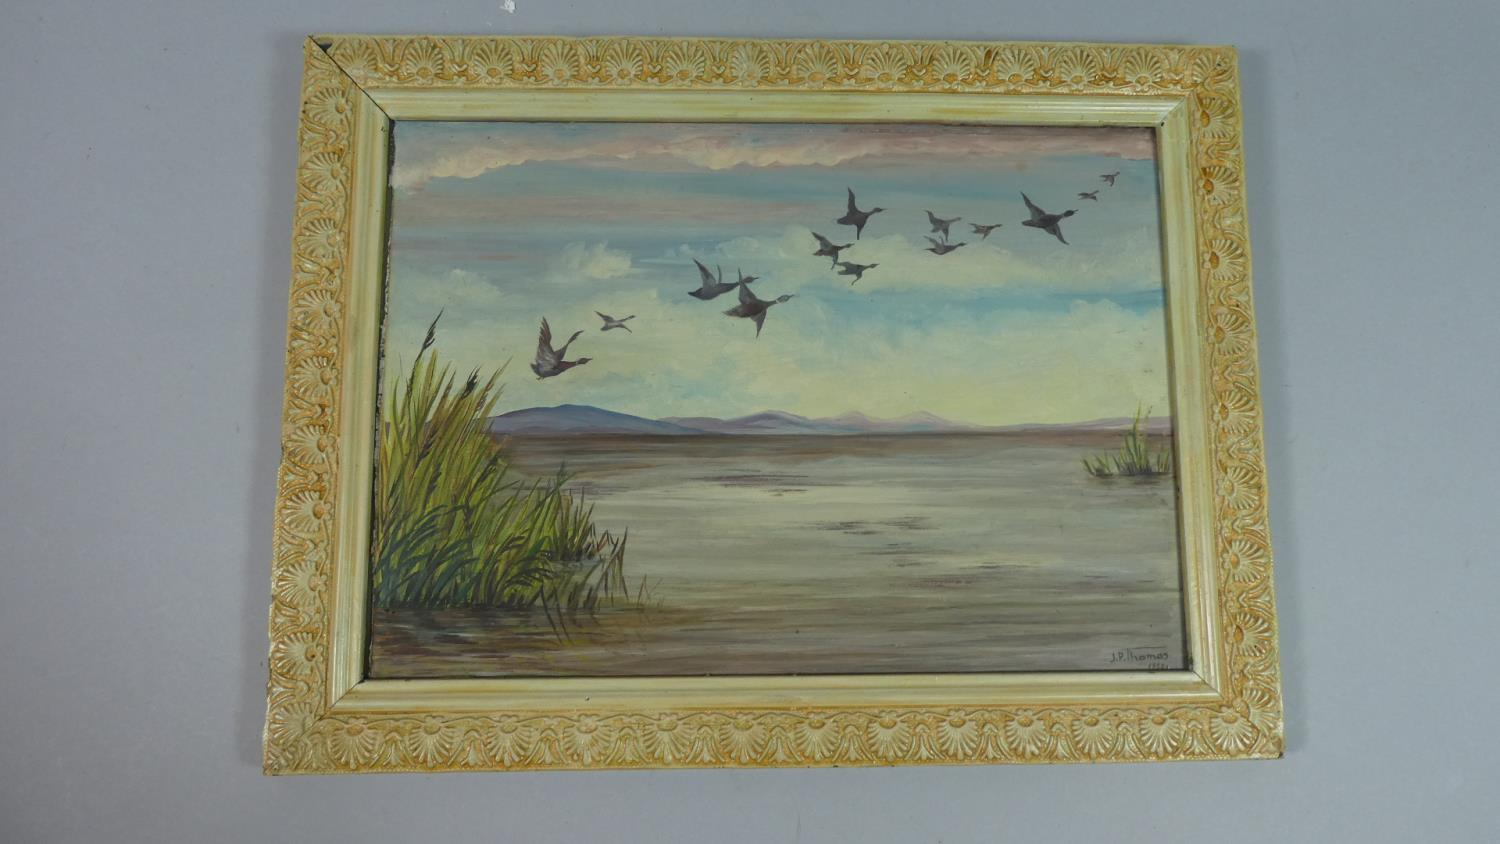 A Framed Oil on Glass Depicting Ducks in Flight, Signed J P Thomas, 1955, 33cm Wide